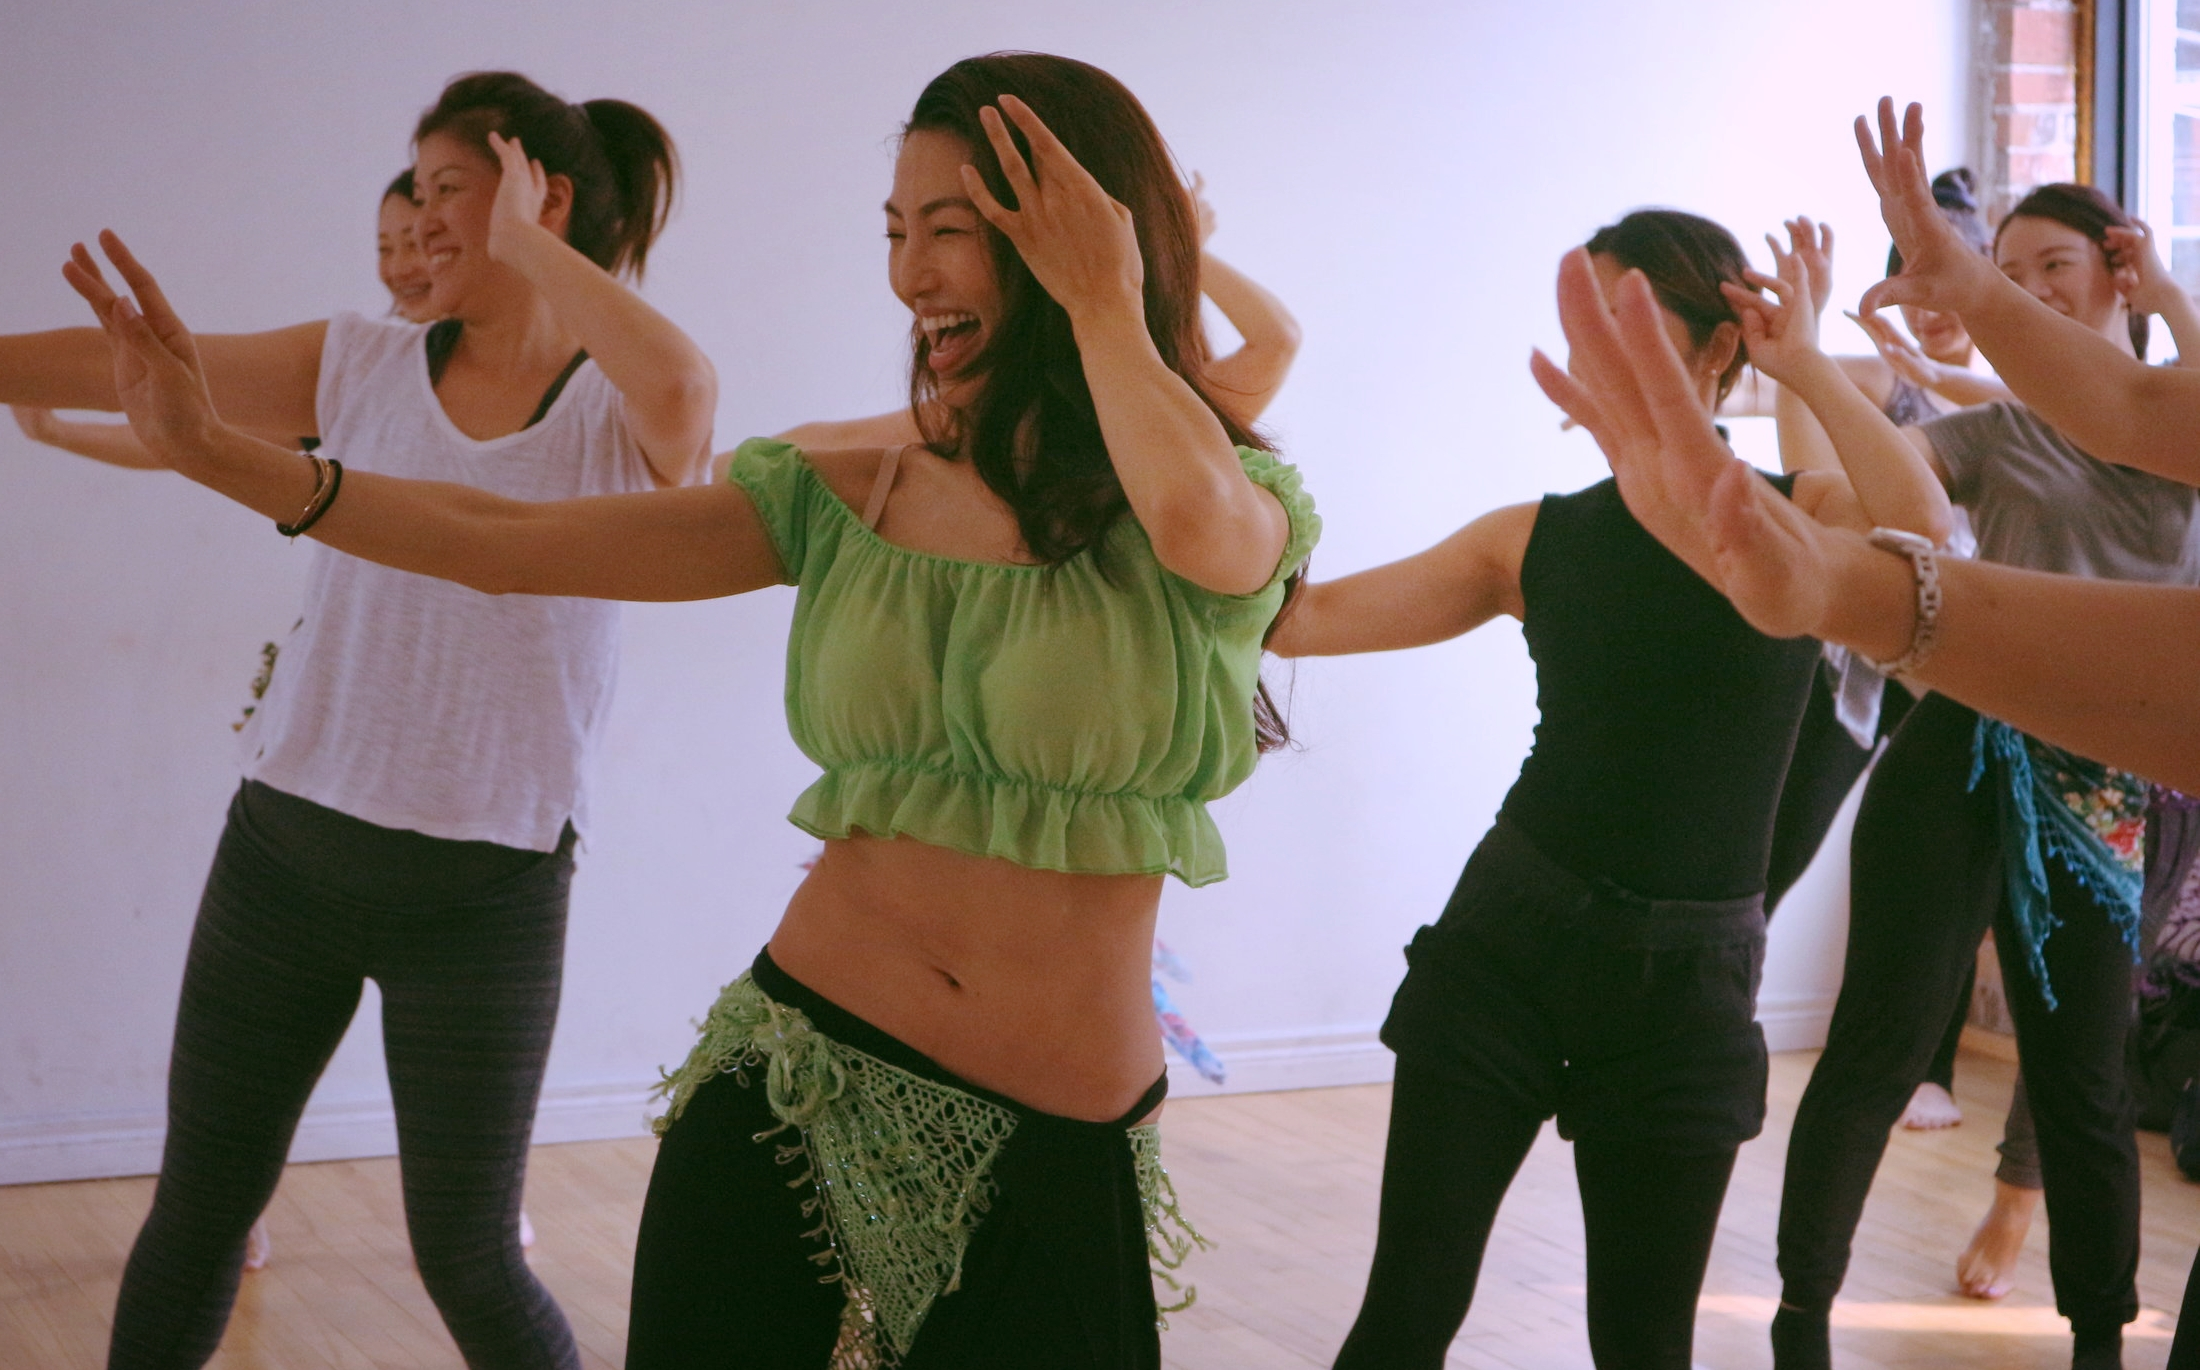 Take a trial lesson - Curious to try out a class? We offer a trial lesson to new students. Join us and see if belly dance is for you!